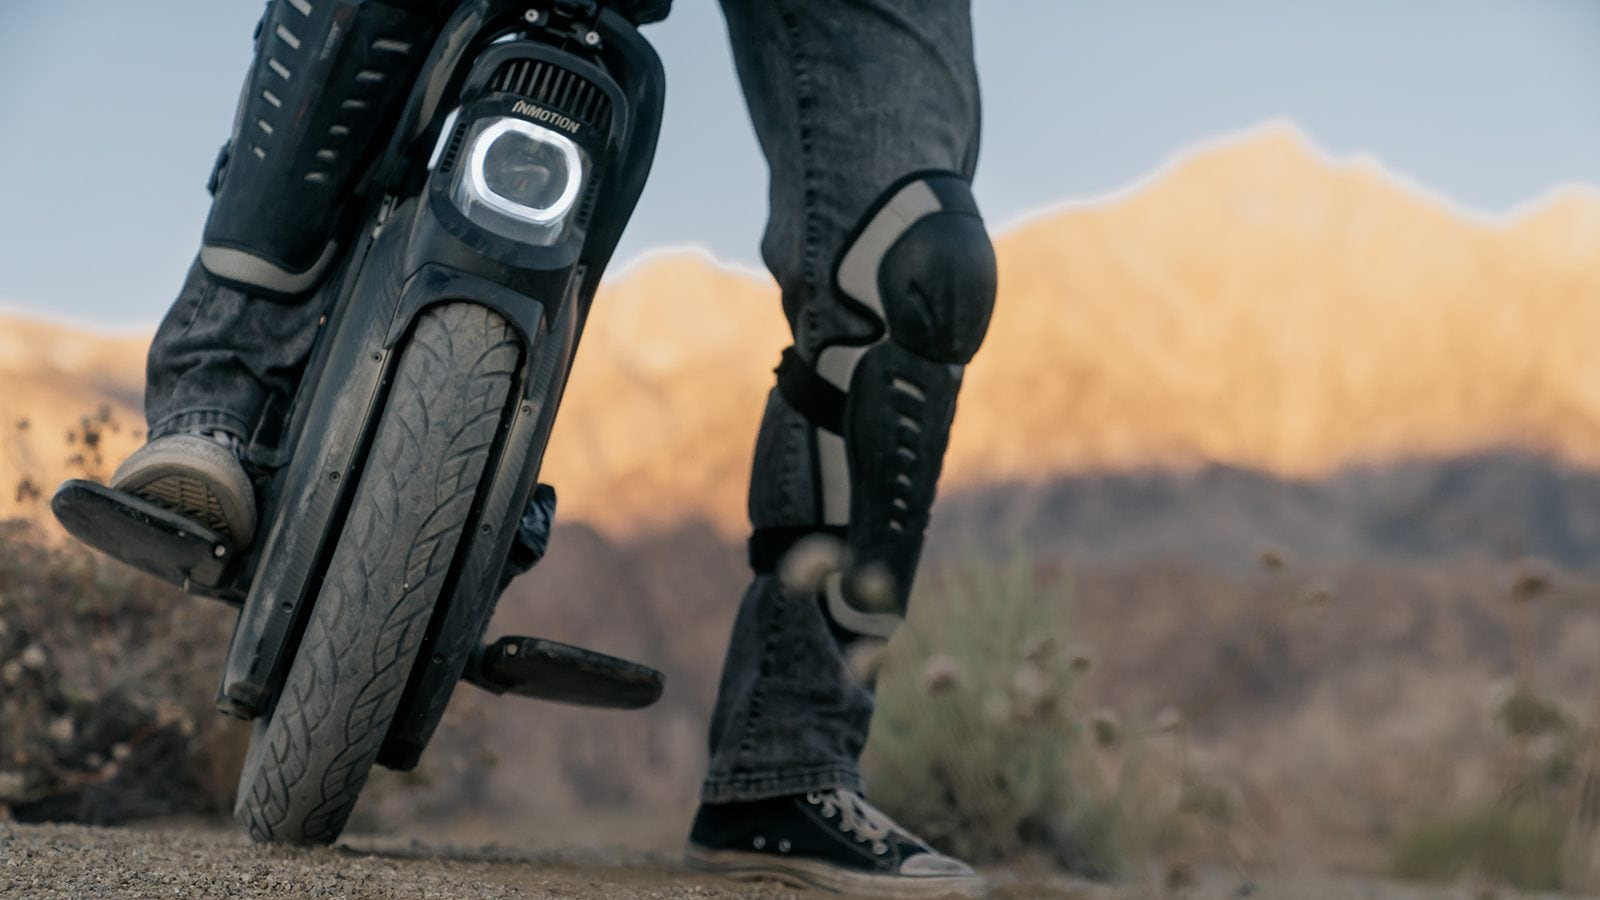 InMotion-V11-Electric-Unicycle-02.jpg